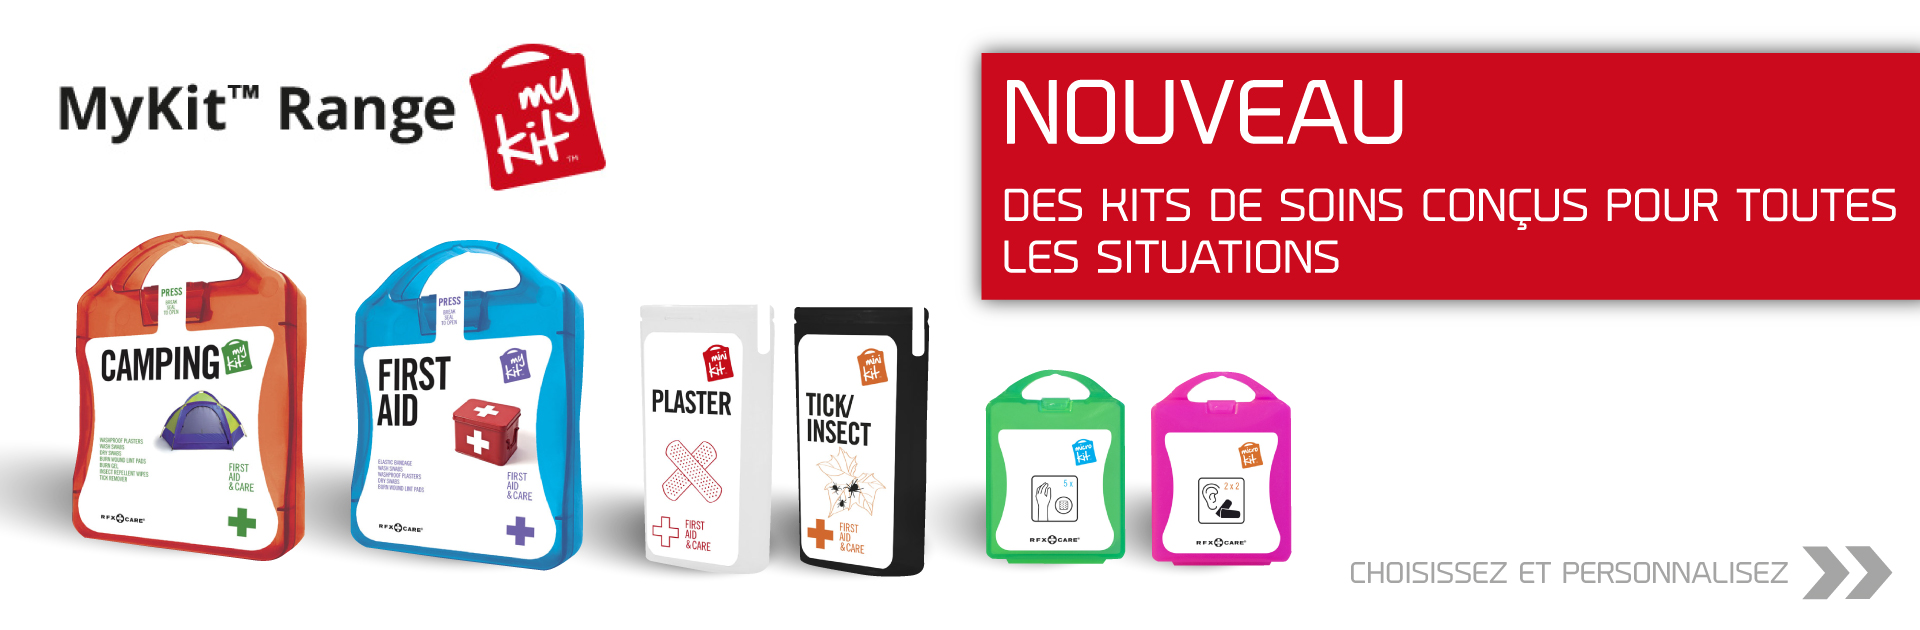 kits de soins personnalisés,toutes situations,camping,running,hotel,voyage,pansements,insectes,sports,my kit, micro kit, mini kit